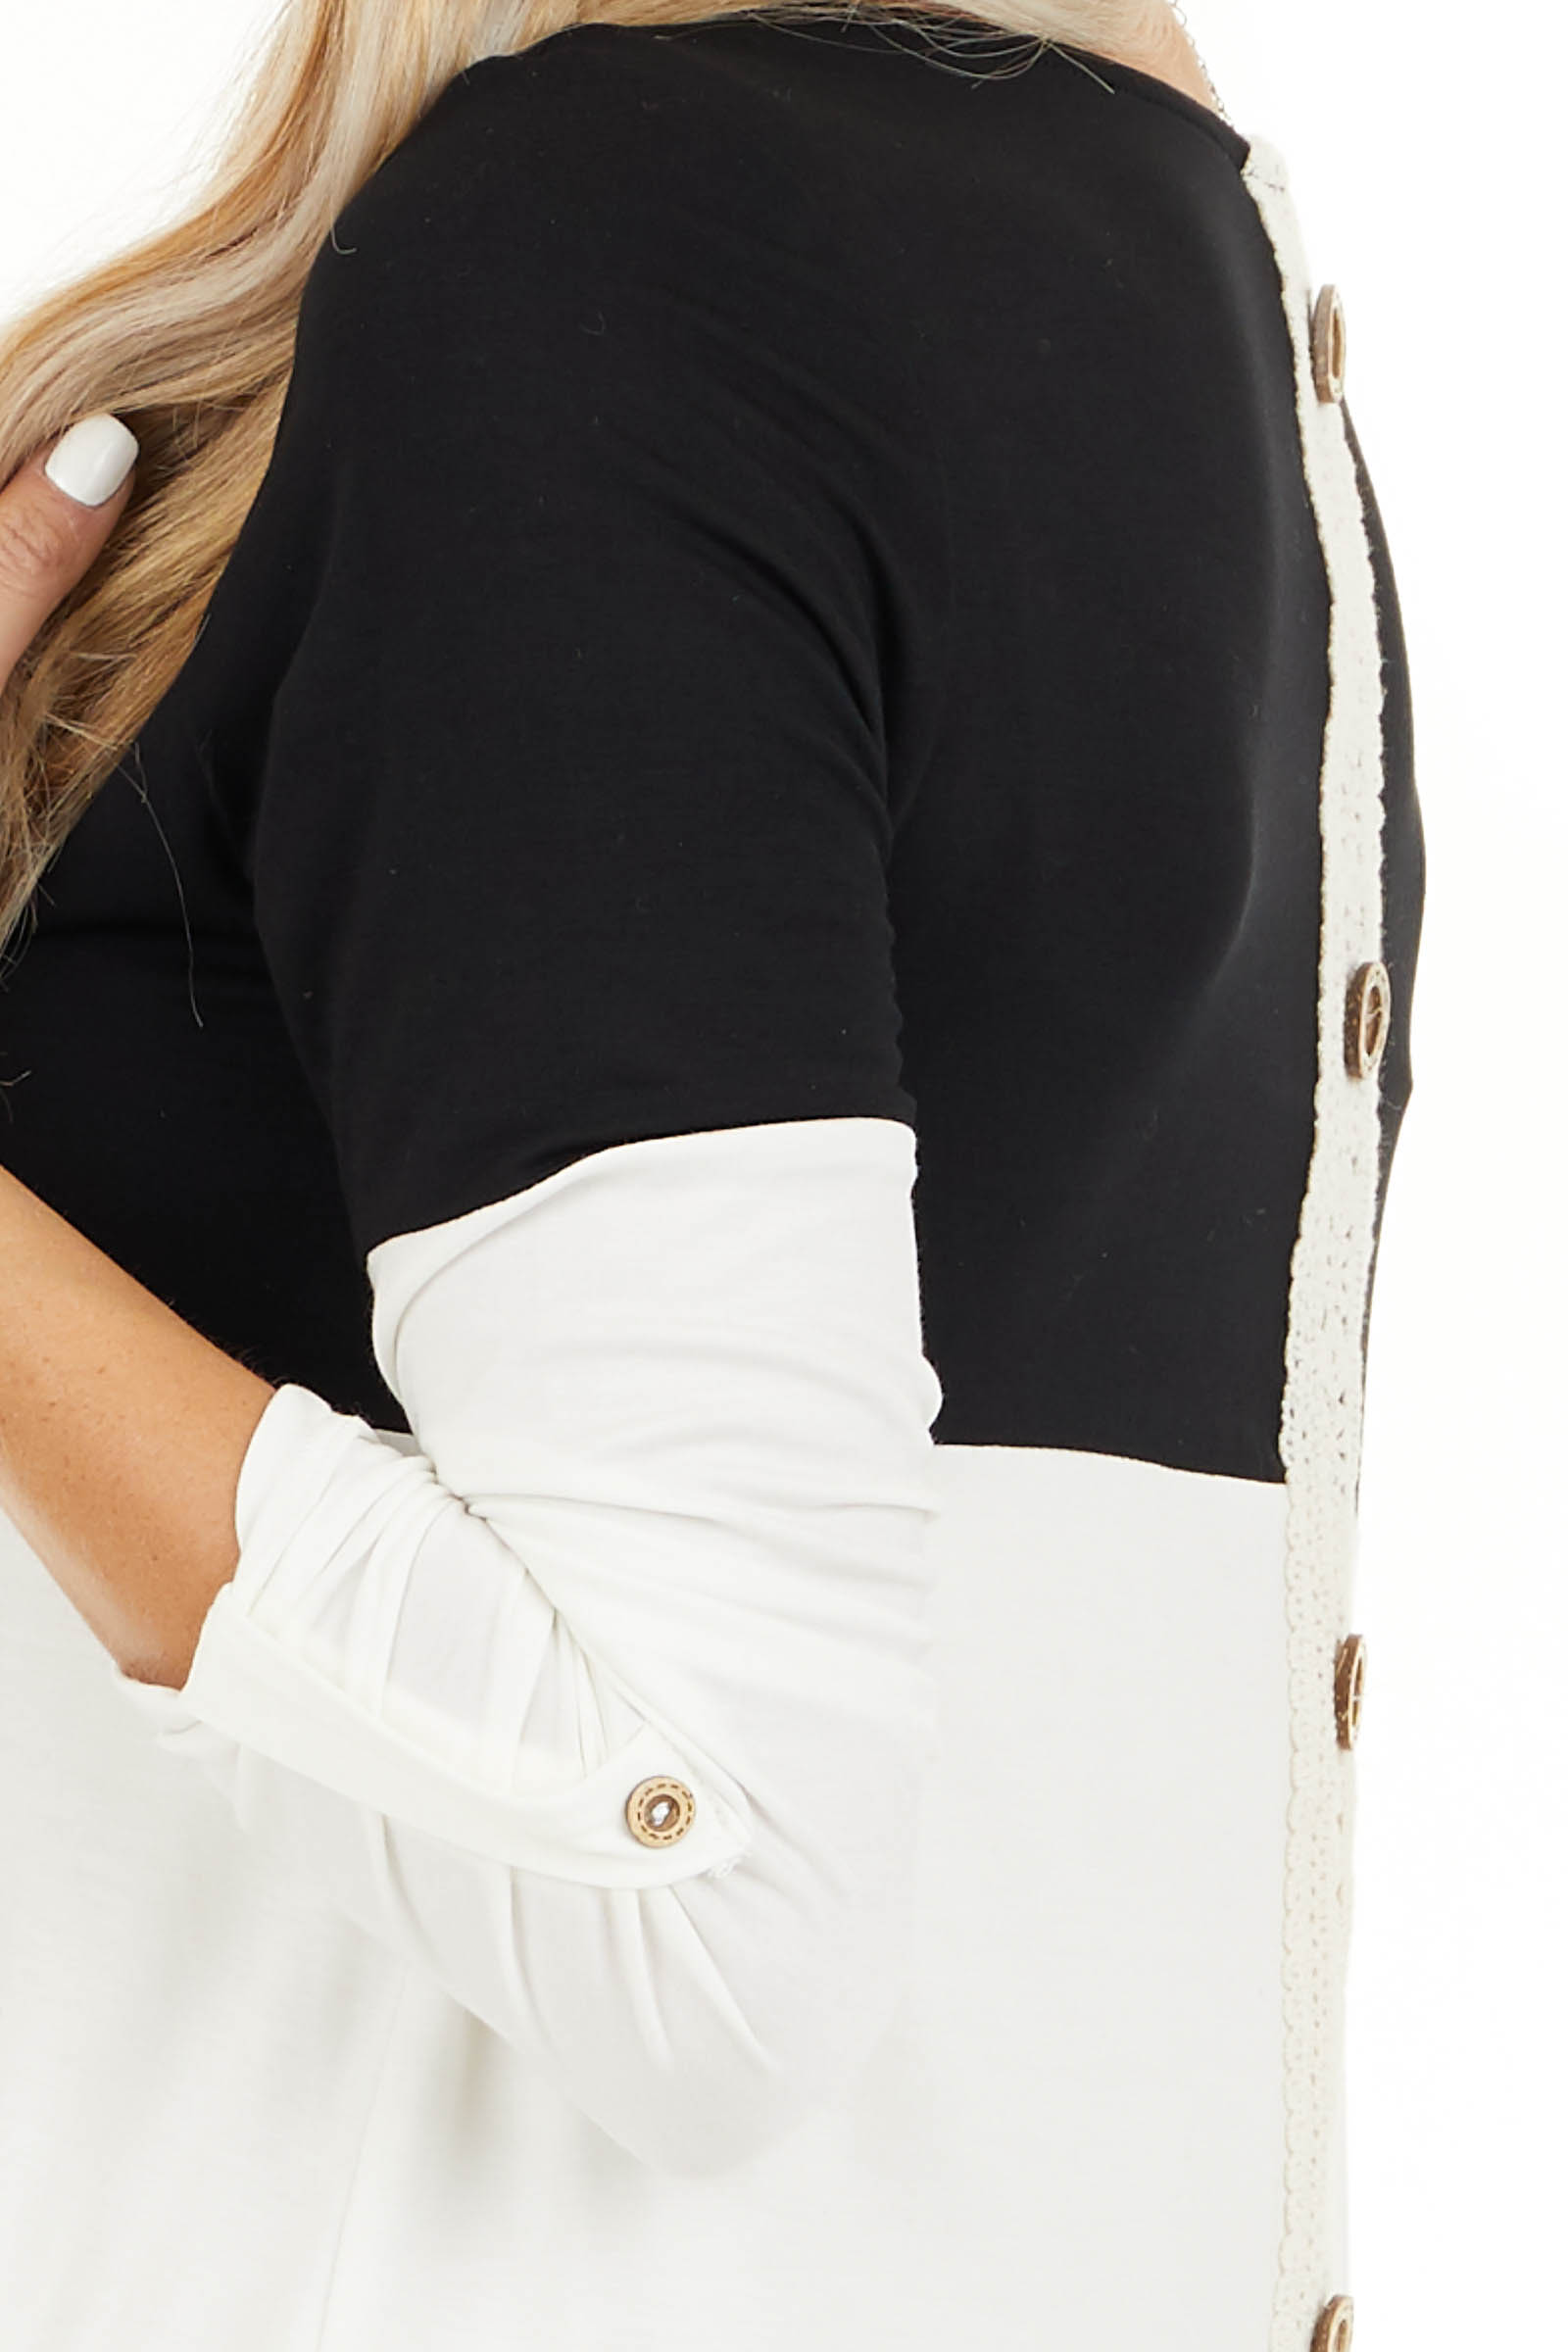 Black Color Block Top with Stripes and Crochet Lace Detail detail